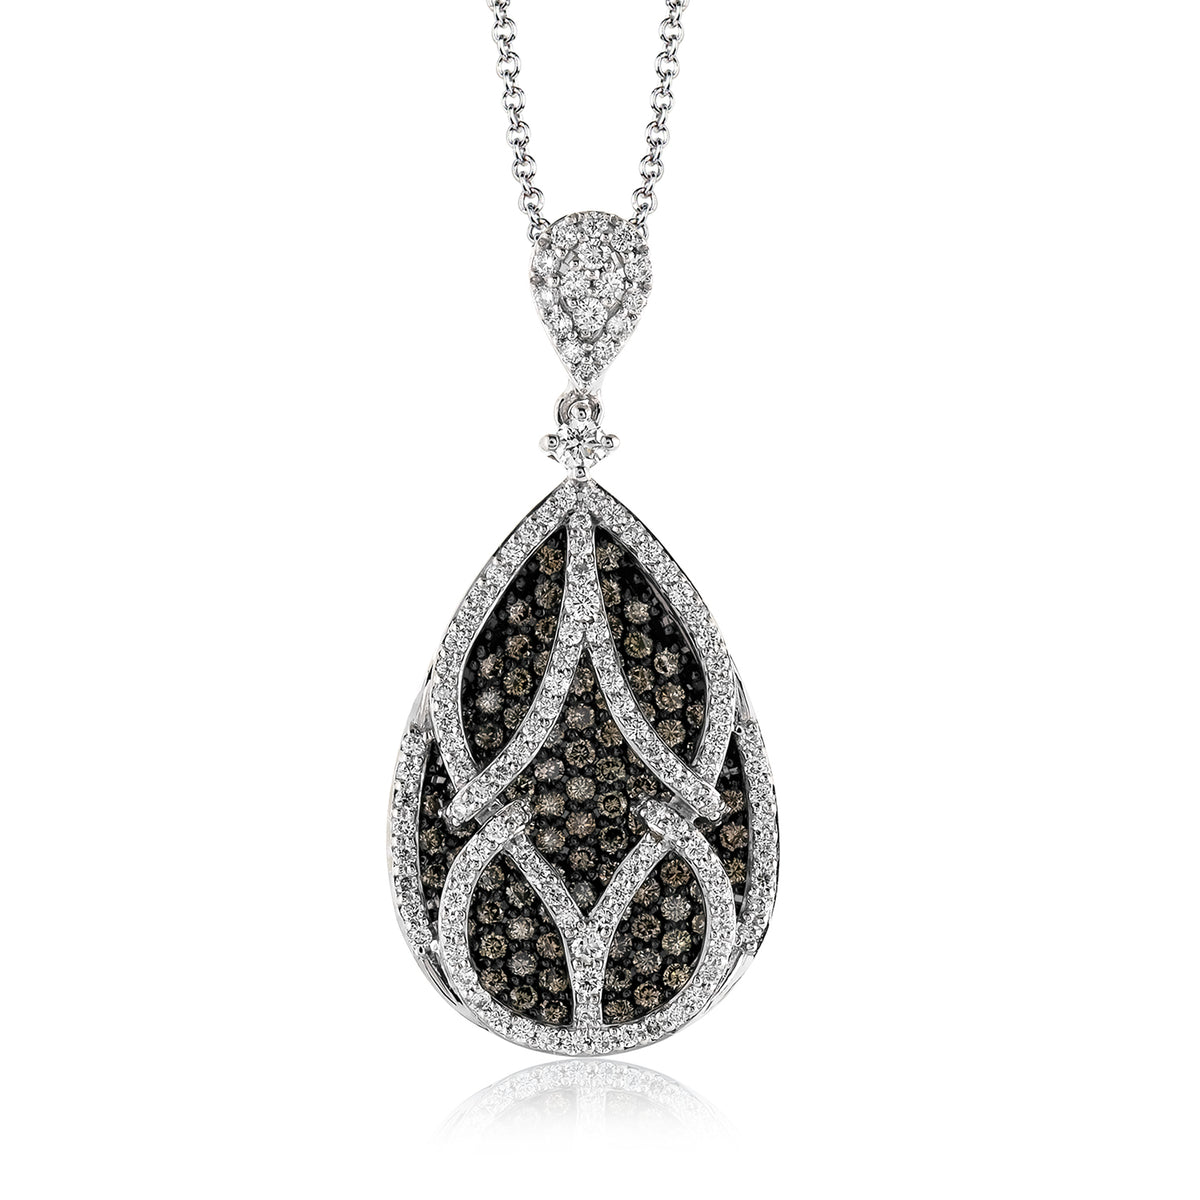 Simon G 18K White Gold Cognac and White Diamond Pear Shape Pendant